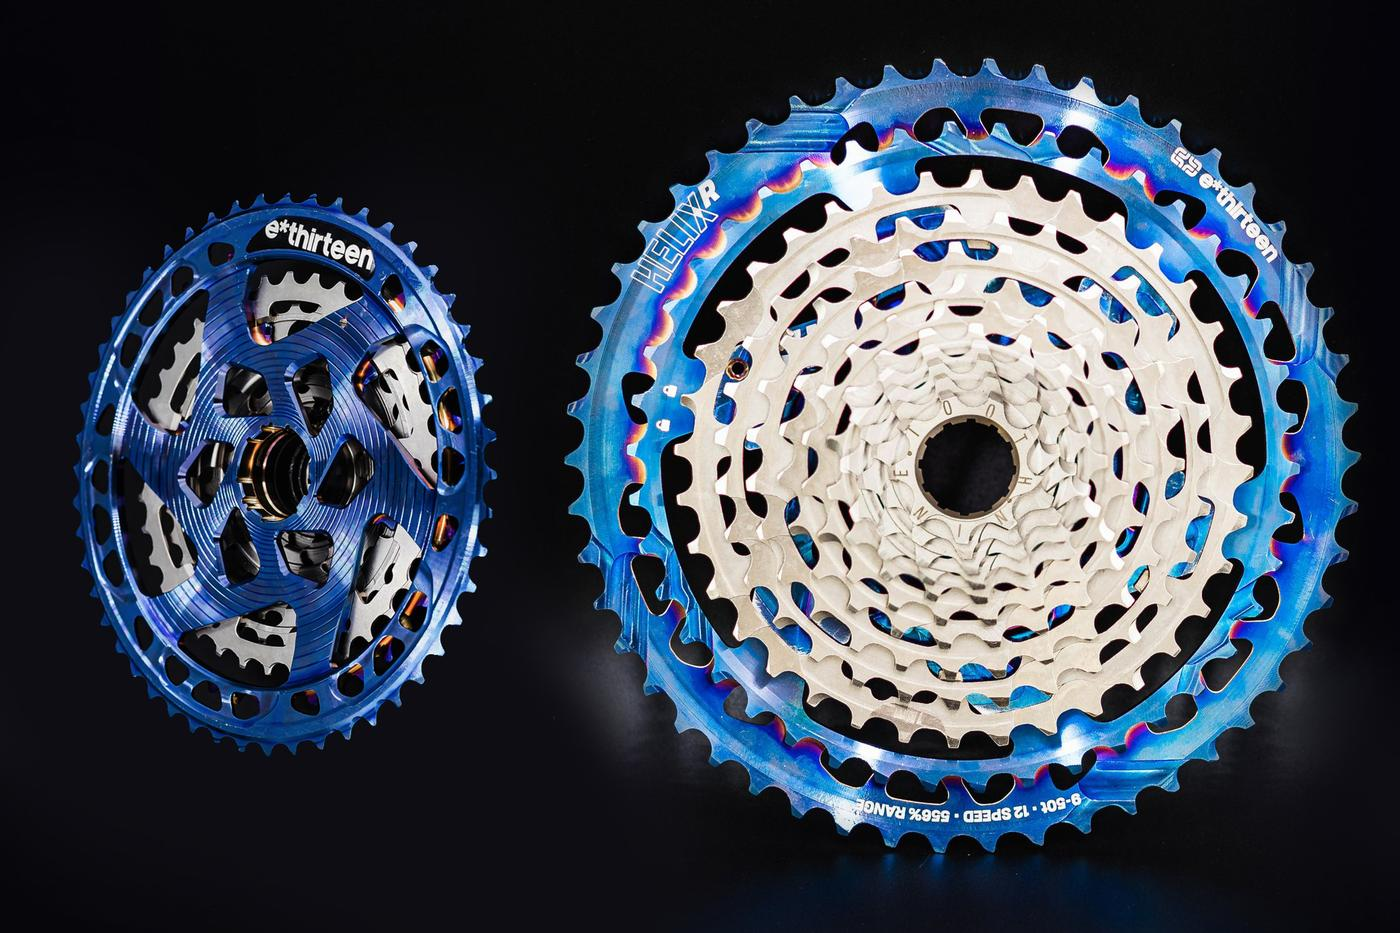 e*thirteen's New Helix R Cassette